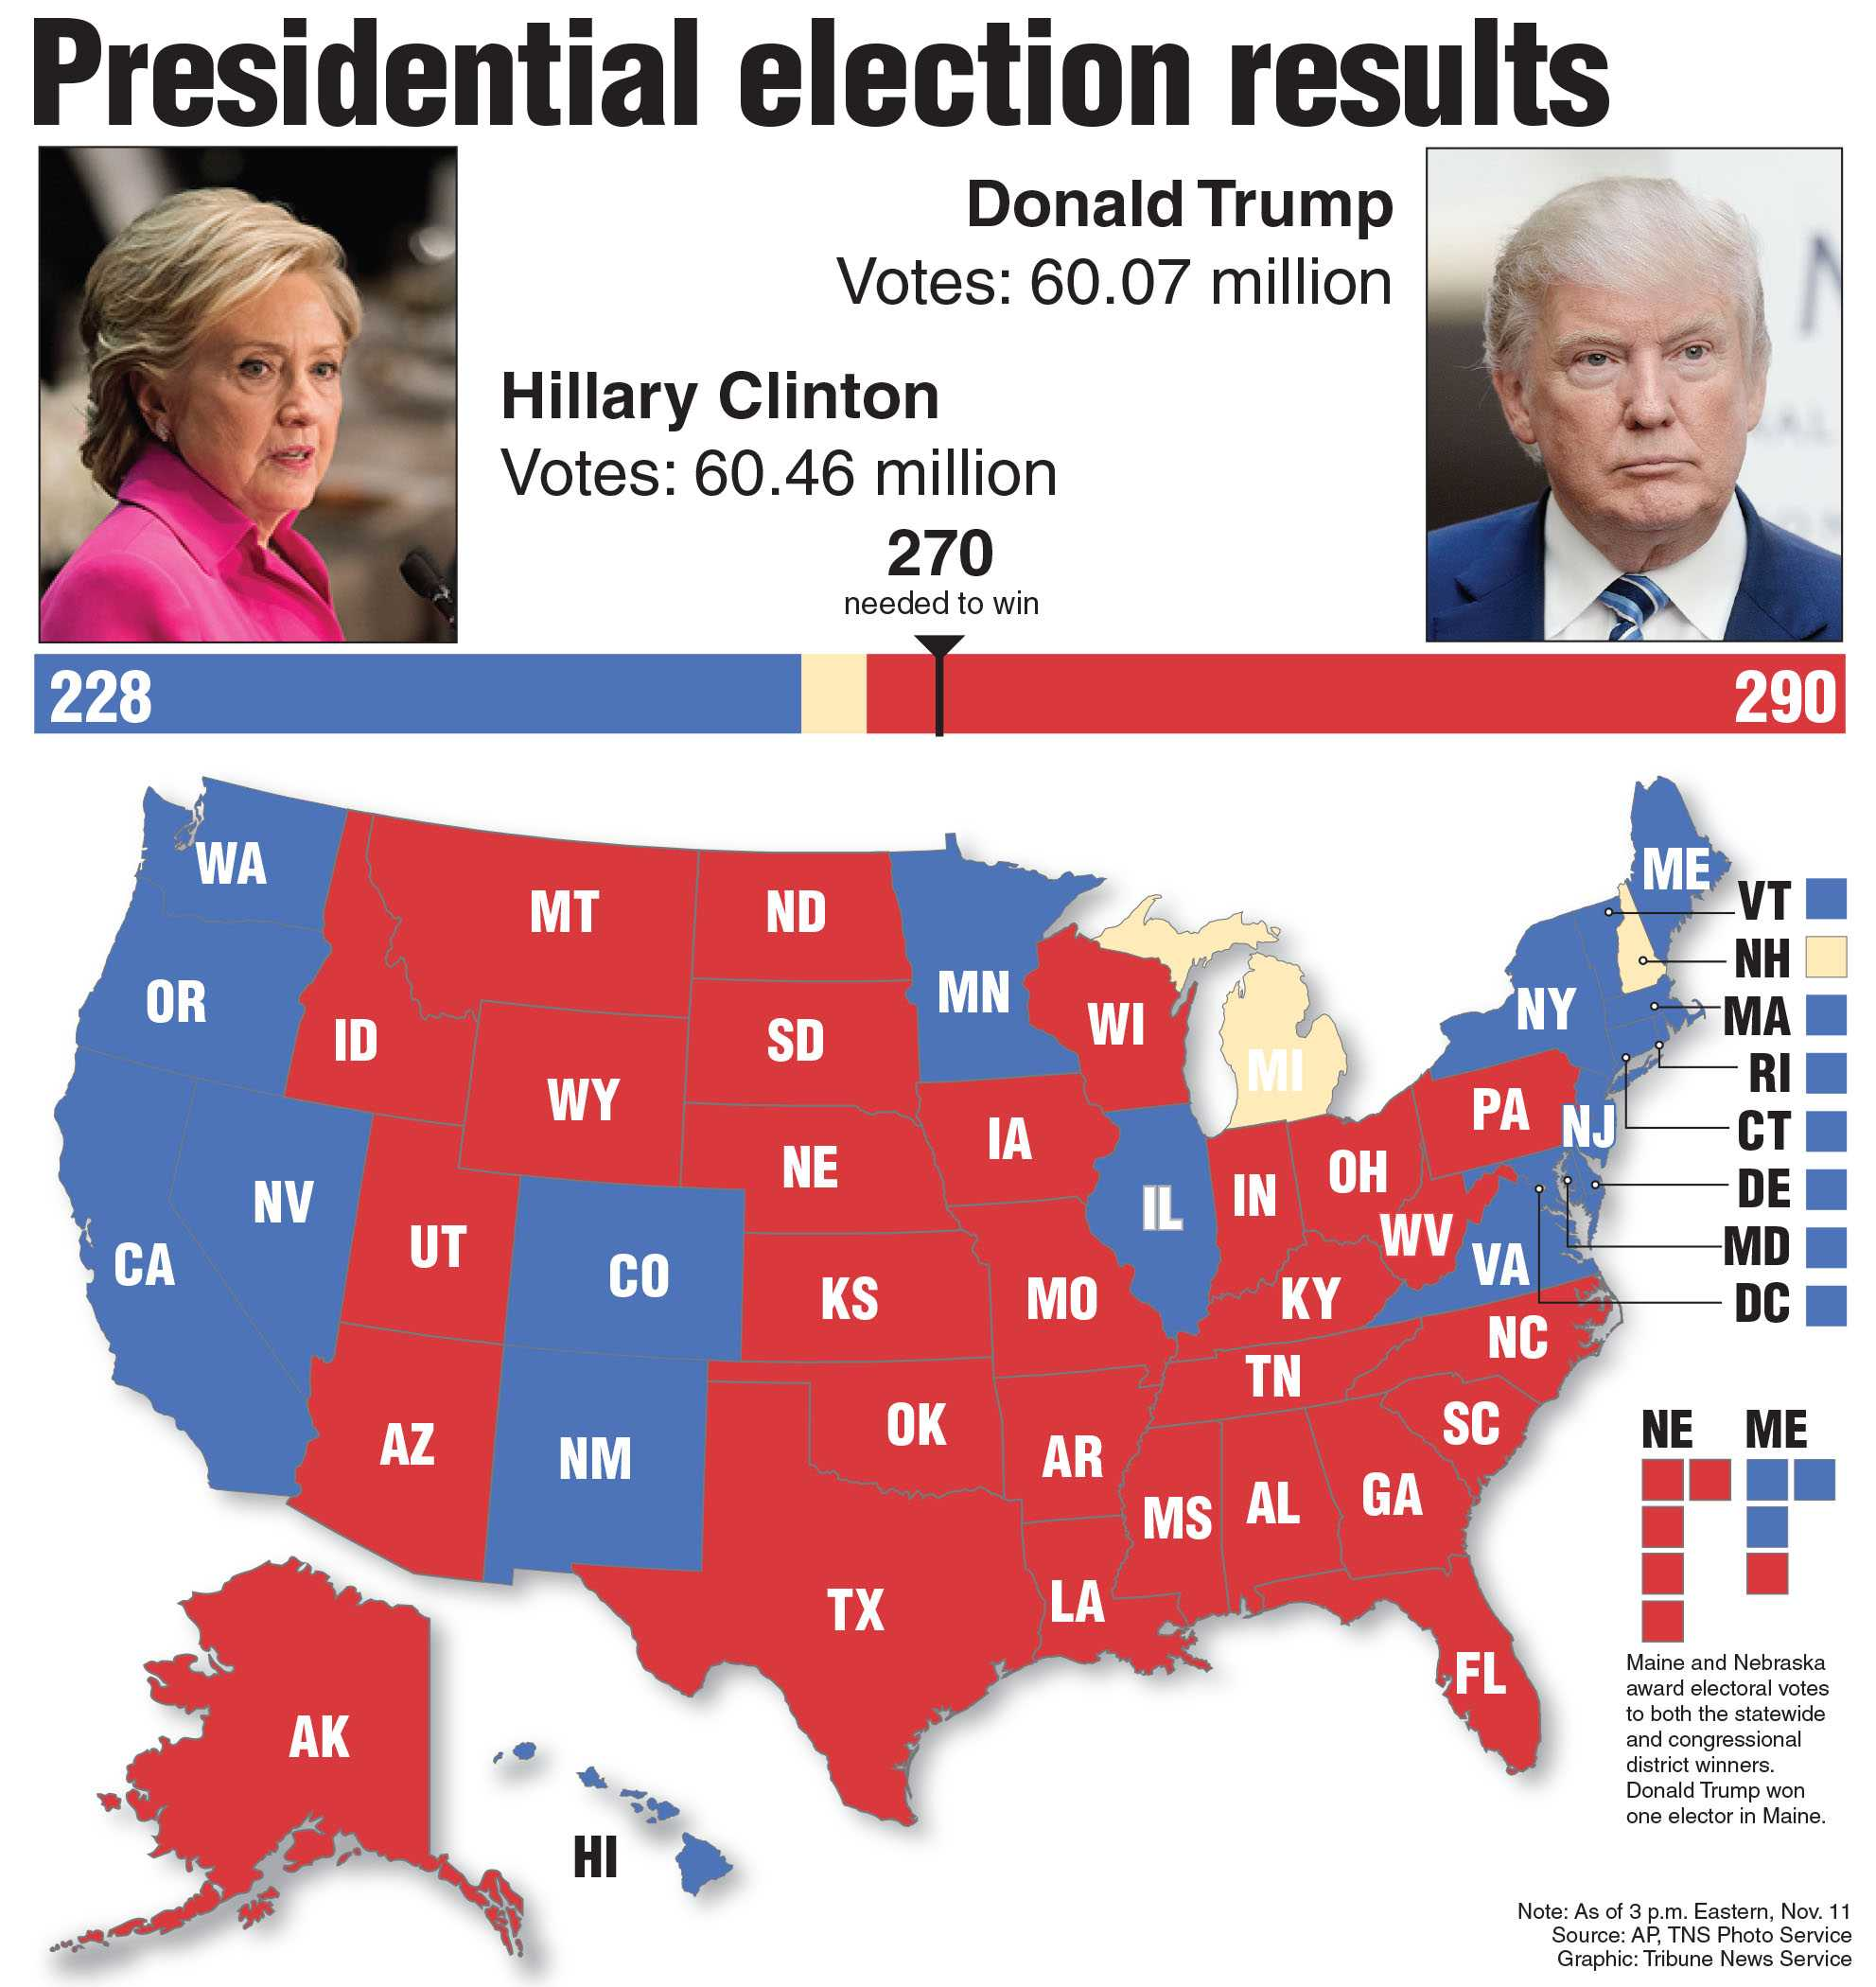 Above is a map of the Presidential election results. Columnists Kyle Day and Leziga Barikor team up for a Conservative analysis of the election results.